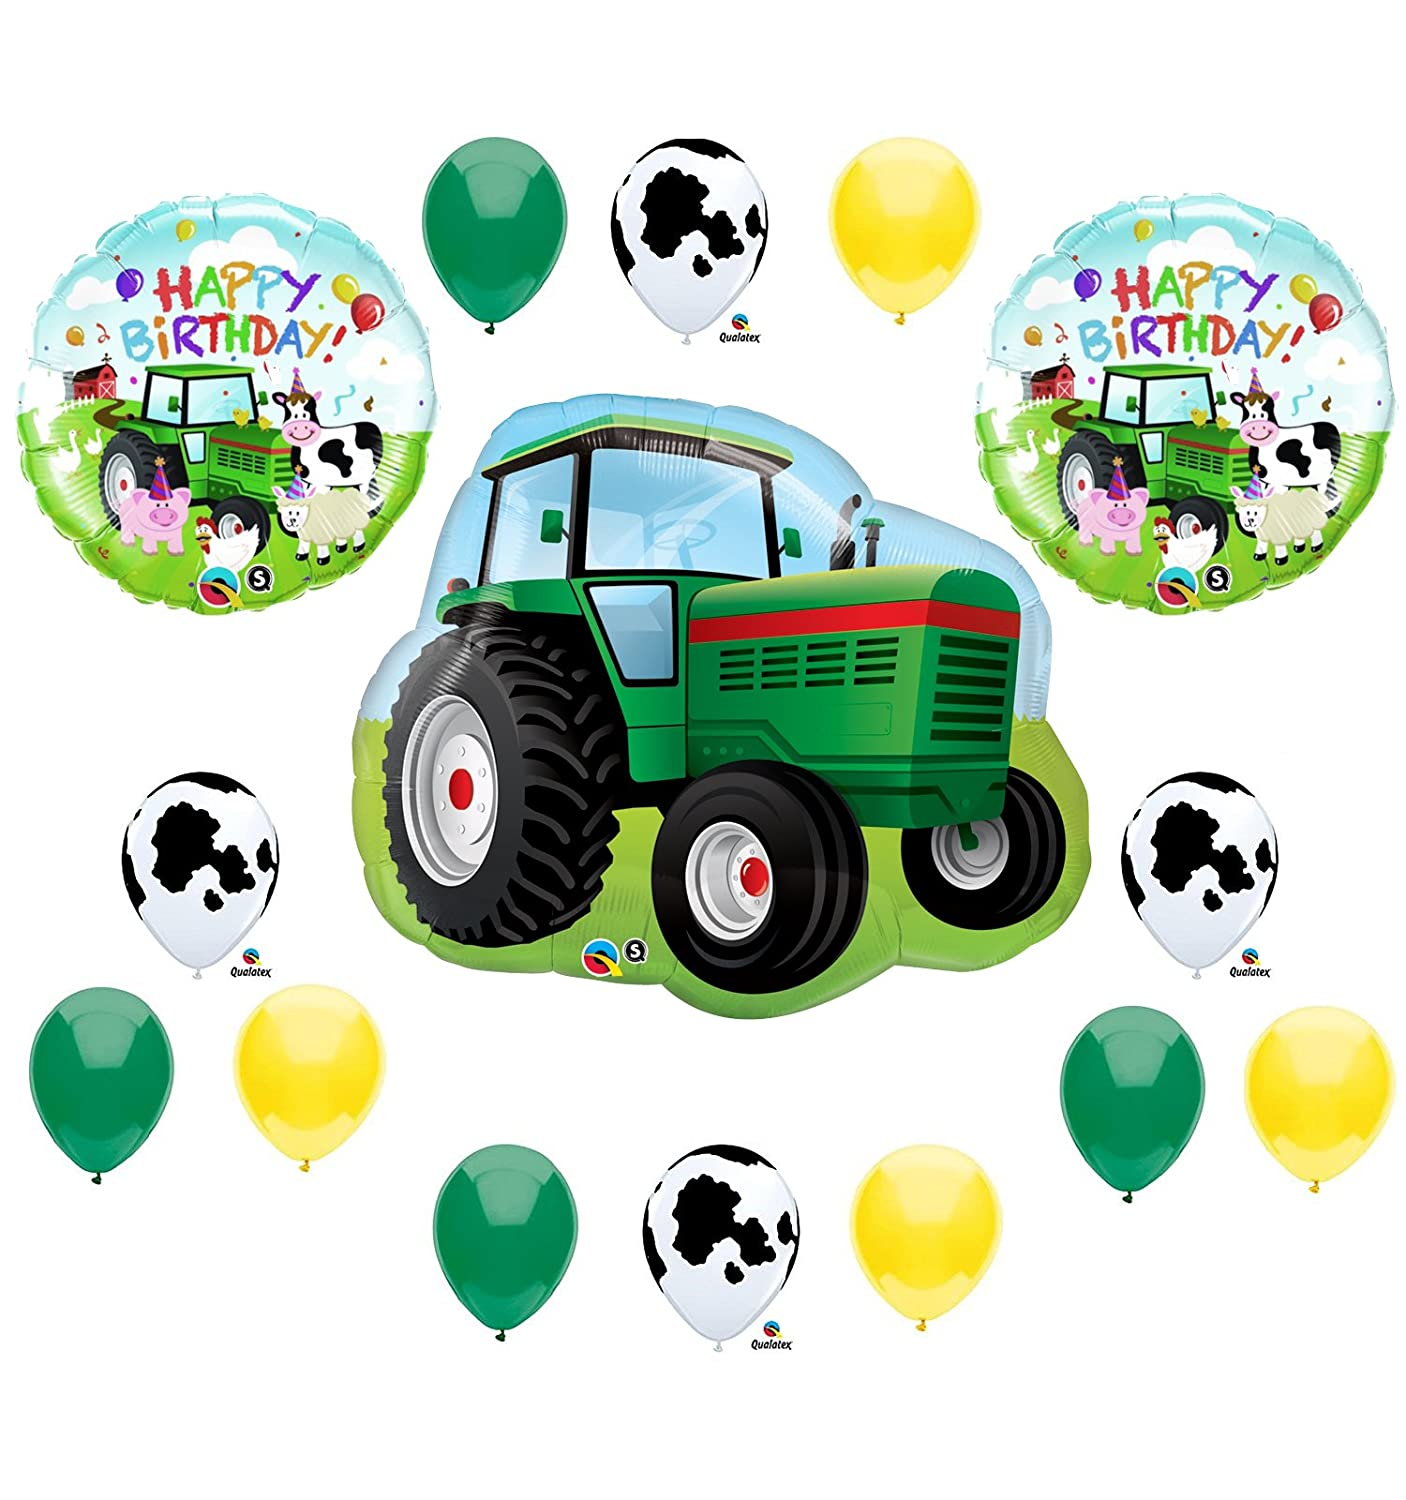 Tractor Birthday Party Balloons Decorations Farm Animal Cow John Deere Shower (MULTI, 1) by Anagram COMINHKPR11902